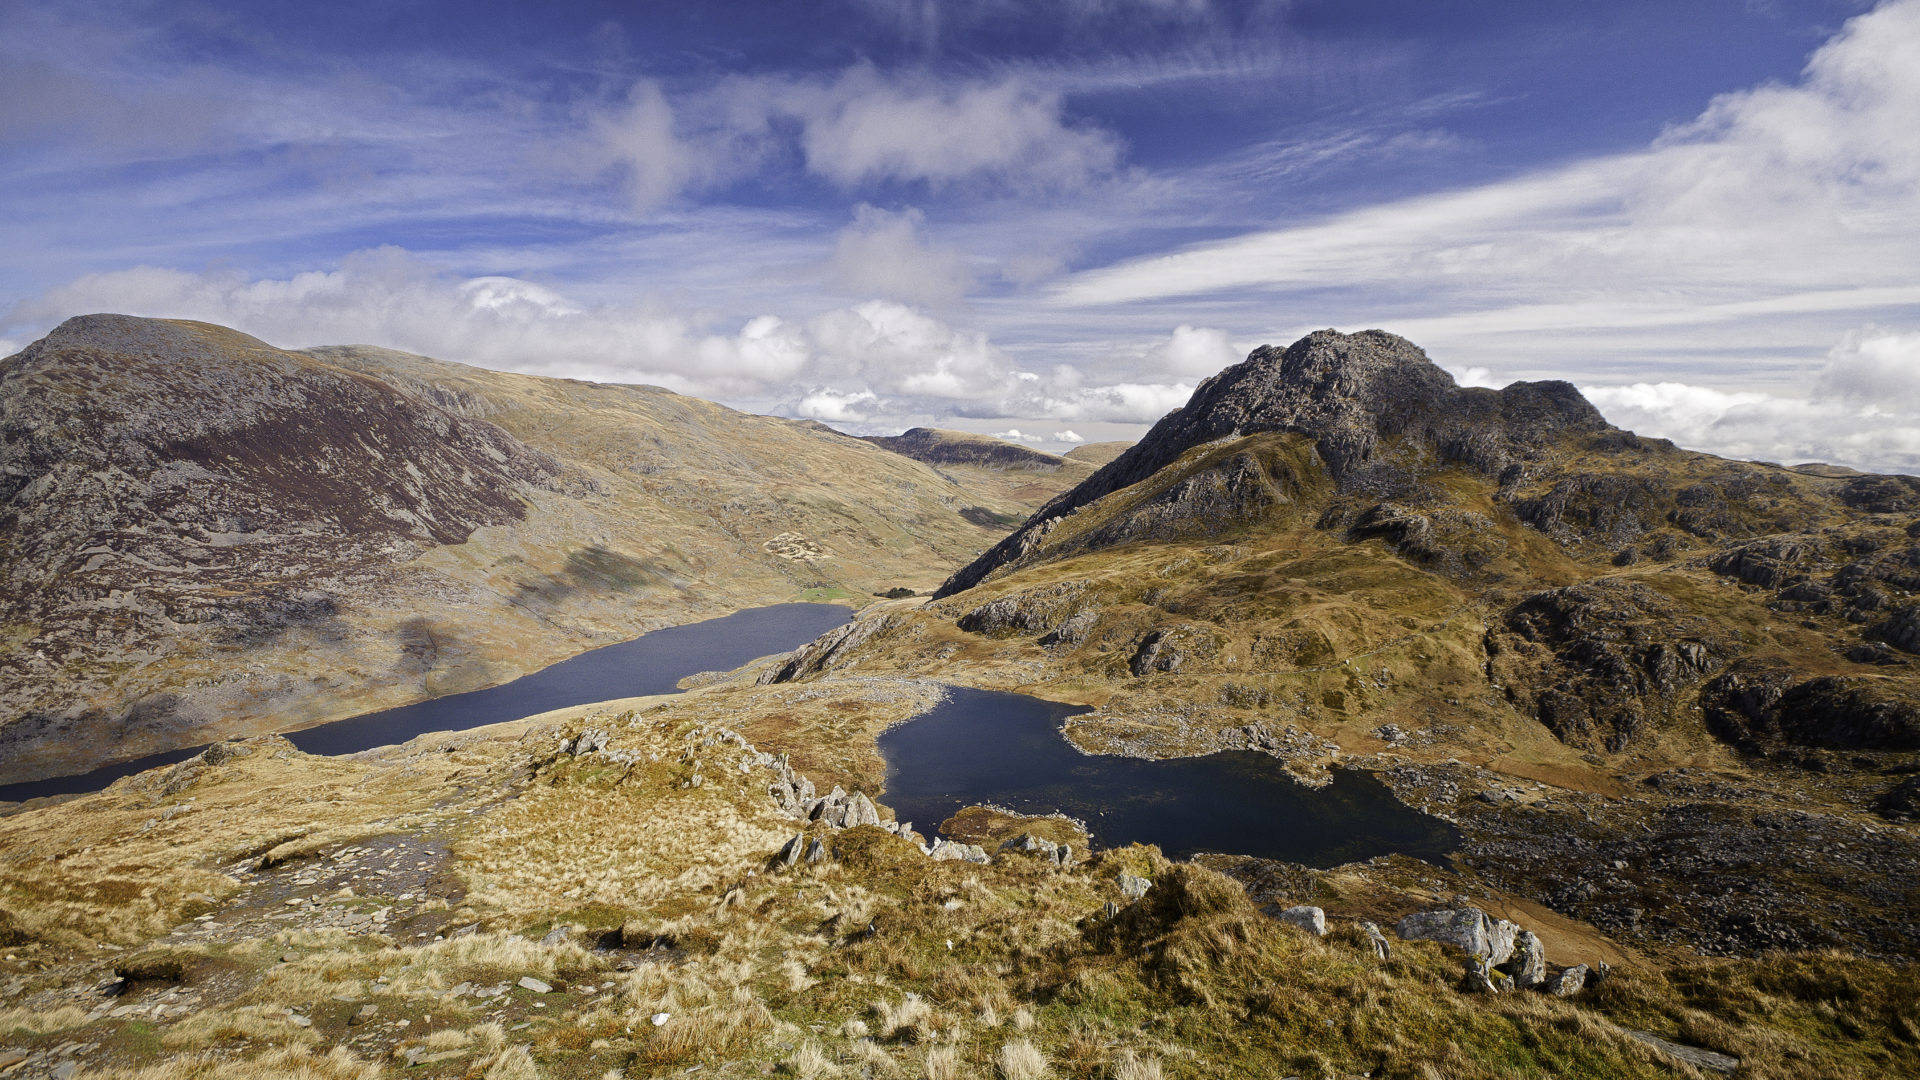 The National Park Of Snowdonia